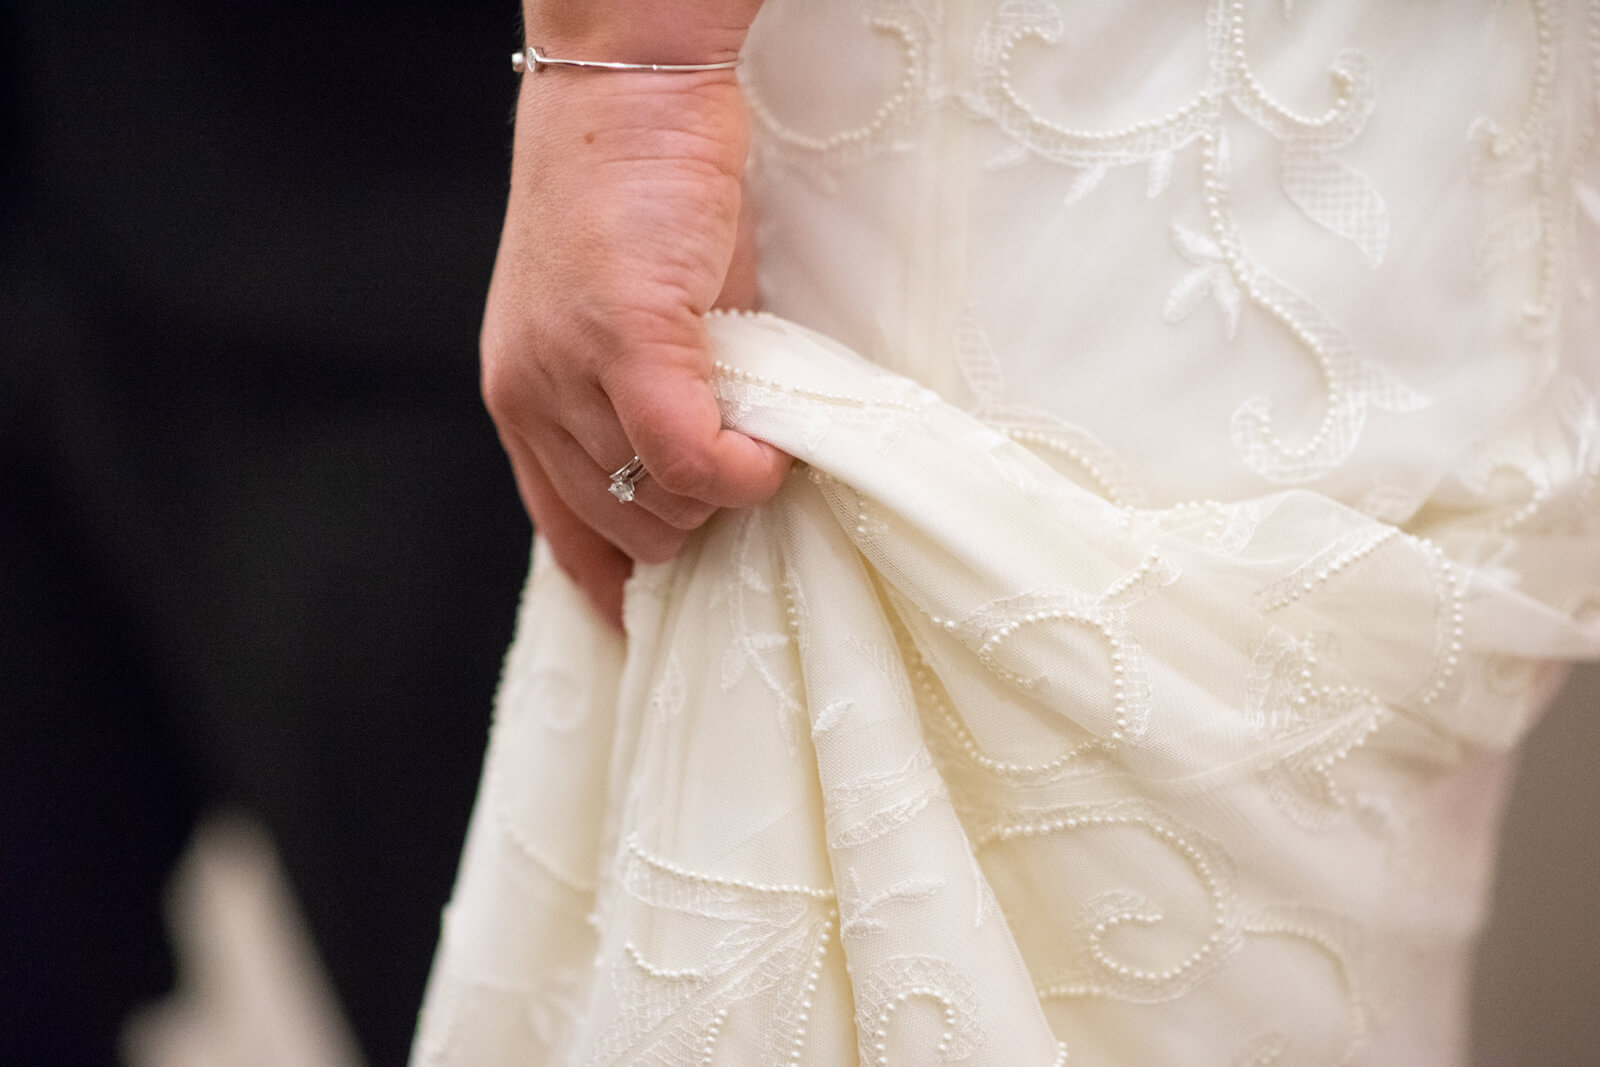 Close up of the bride's hand holding up her dress and wearing her new wedding ring